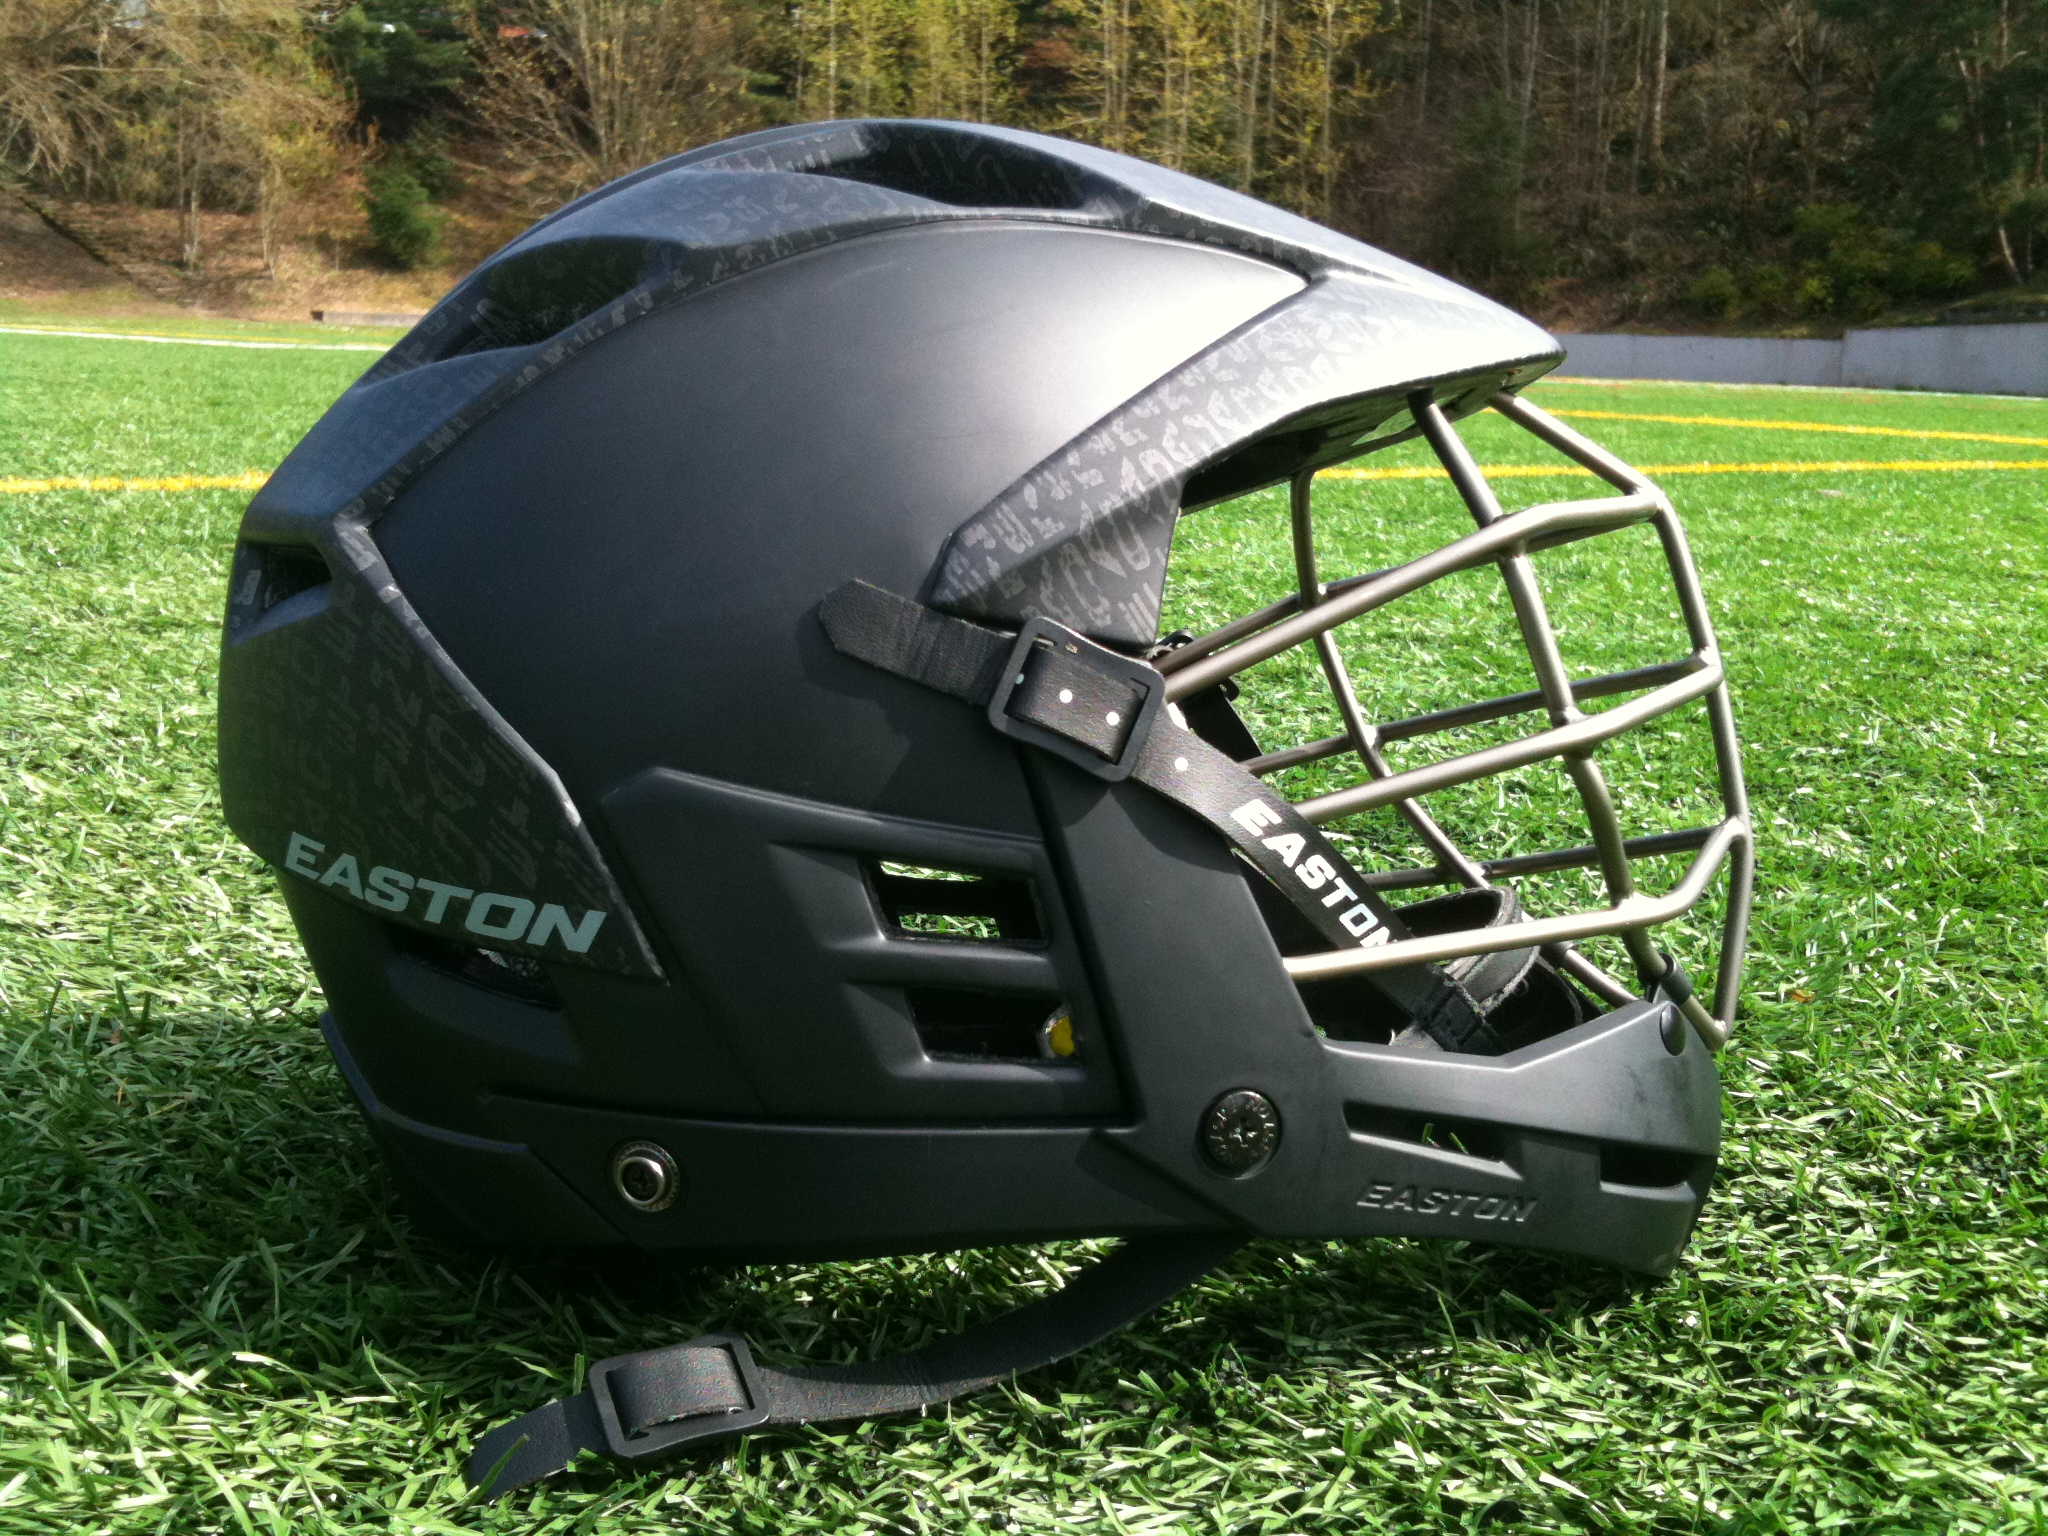 Easton Lacrosse Gets Sports Techie